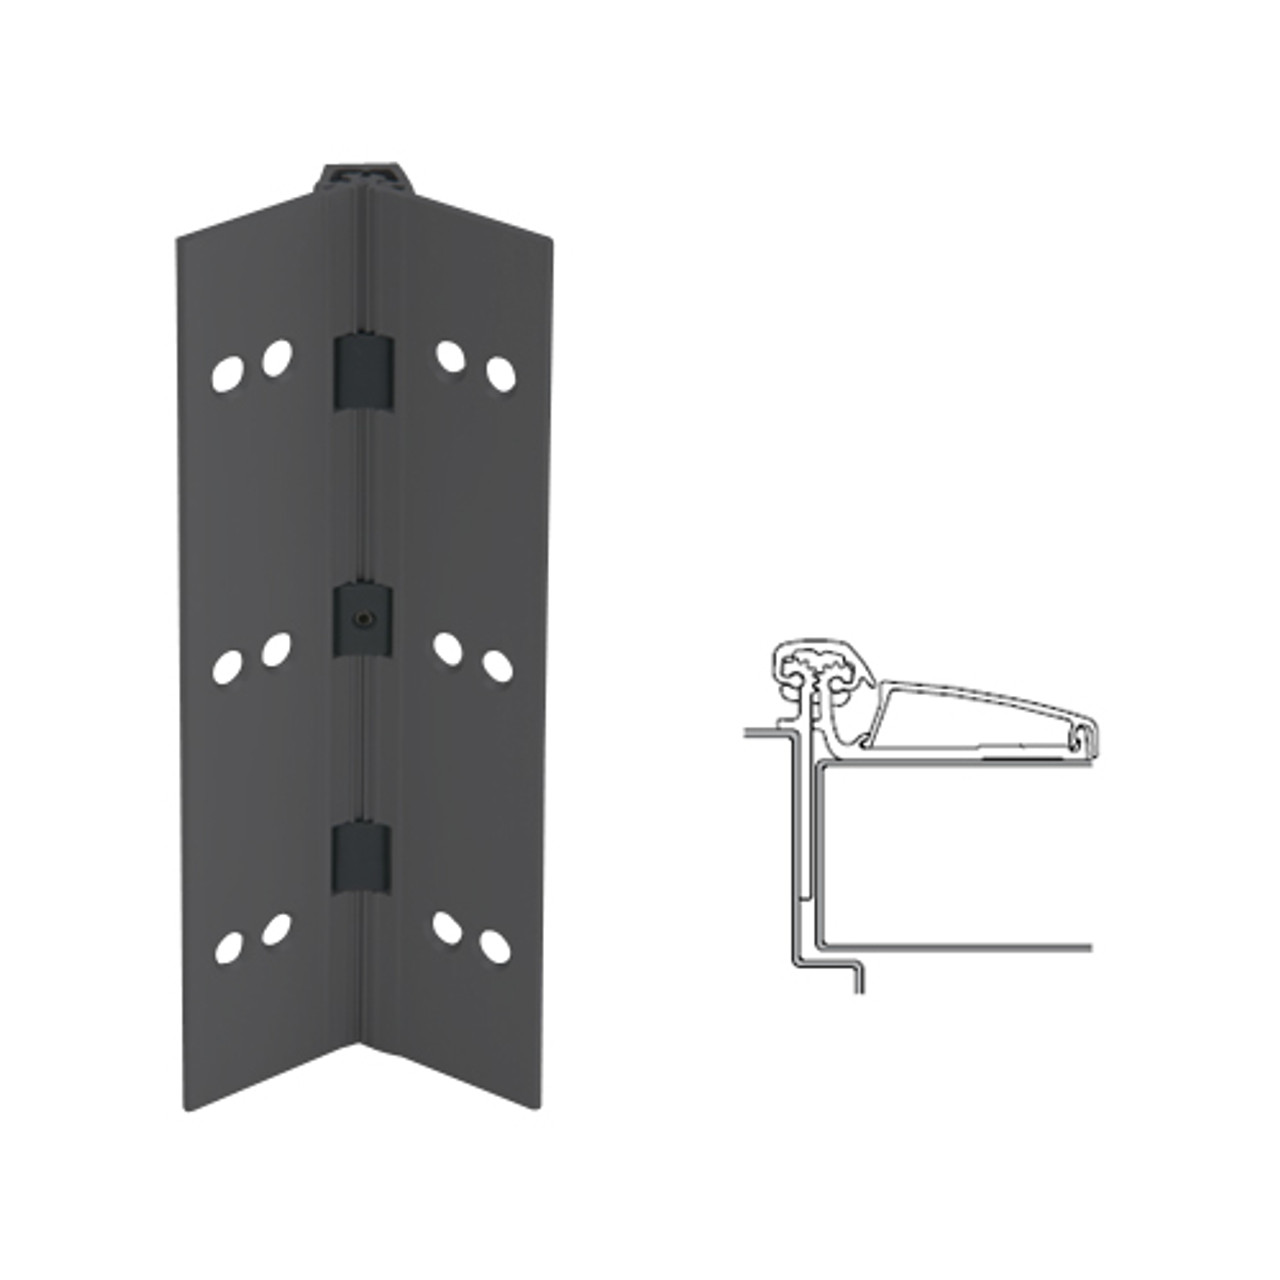 045XY-315AN-95-SECHM IVES Adjustable Half Surface Continuous Geared Hinges with Security Screws - Hex Pin Drive in Anodized Black